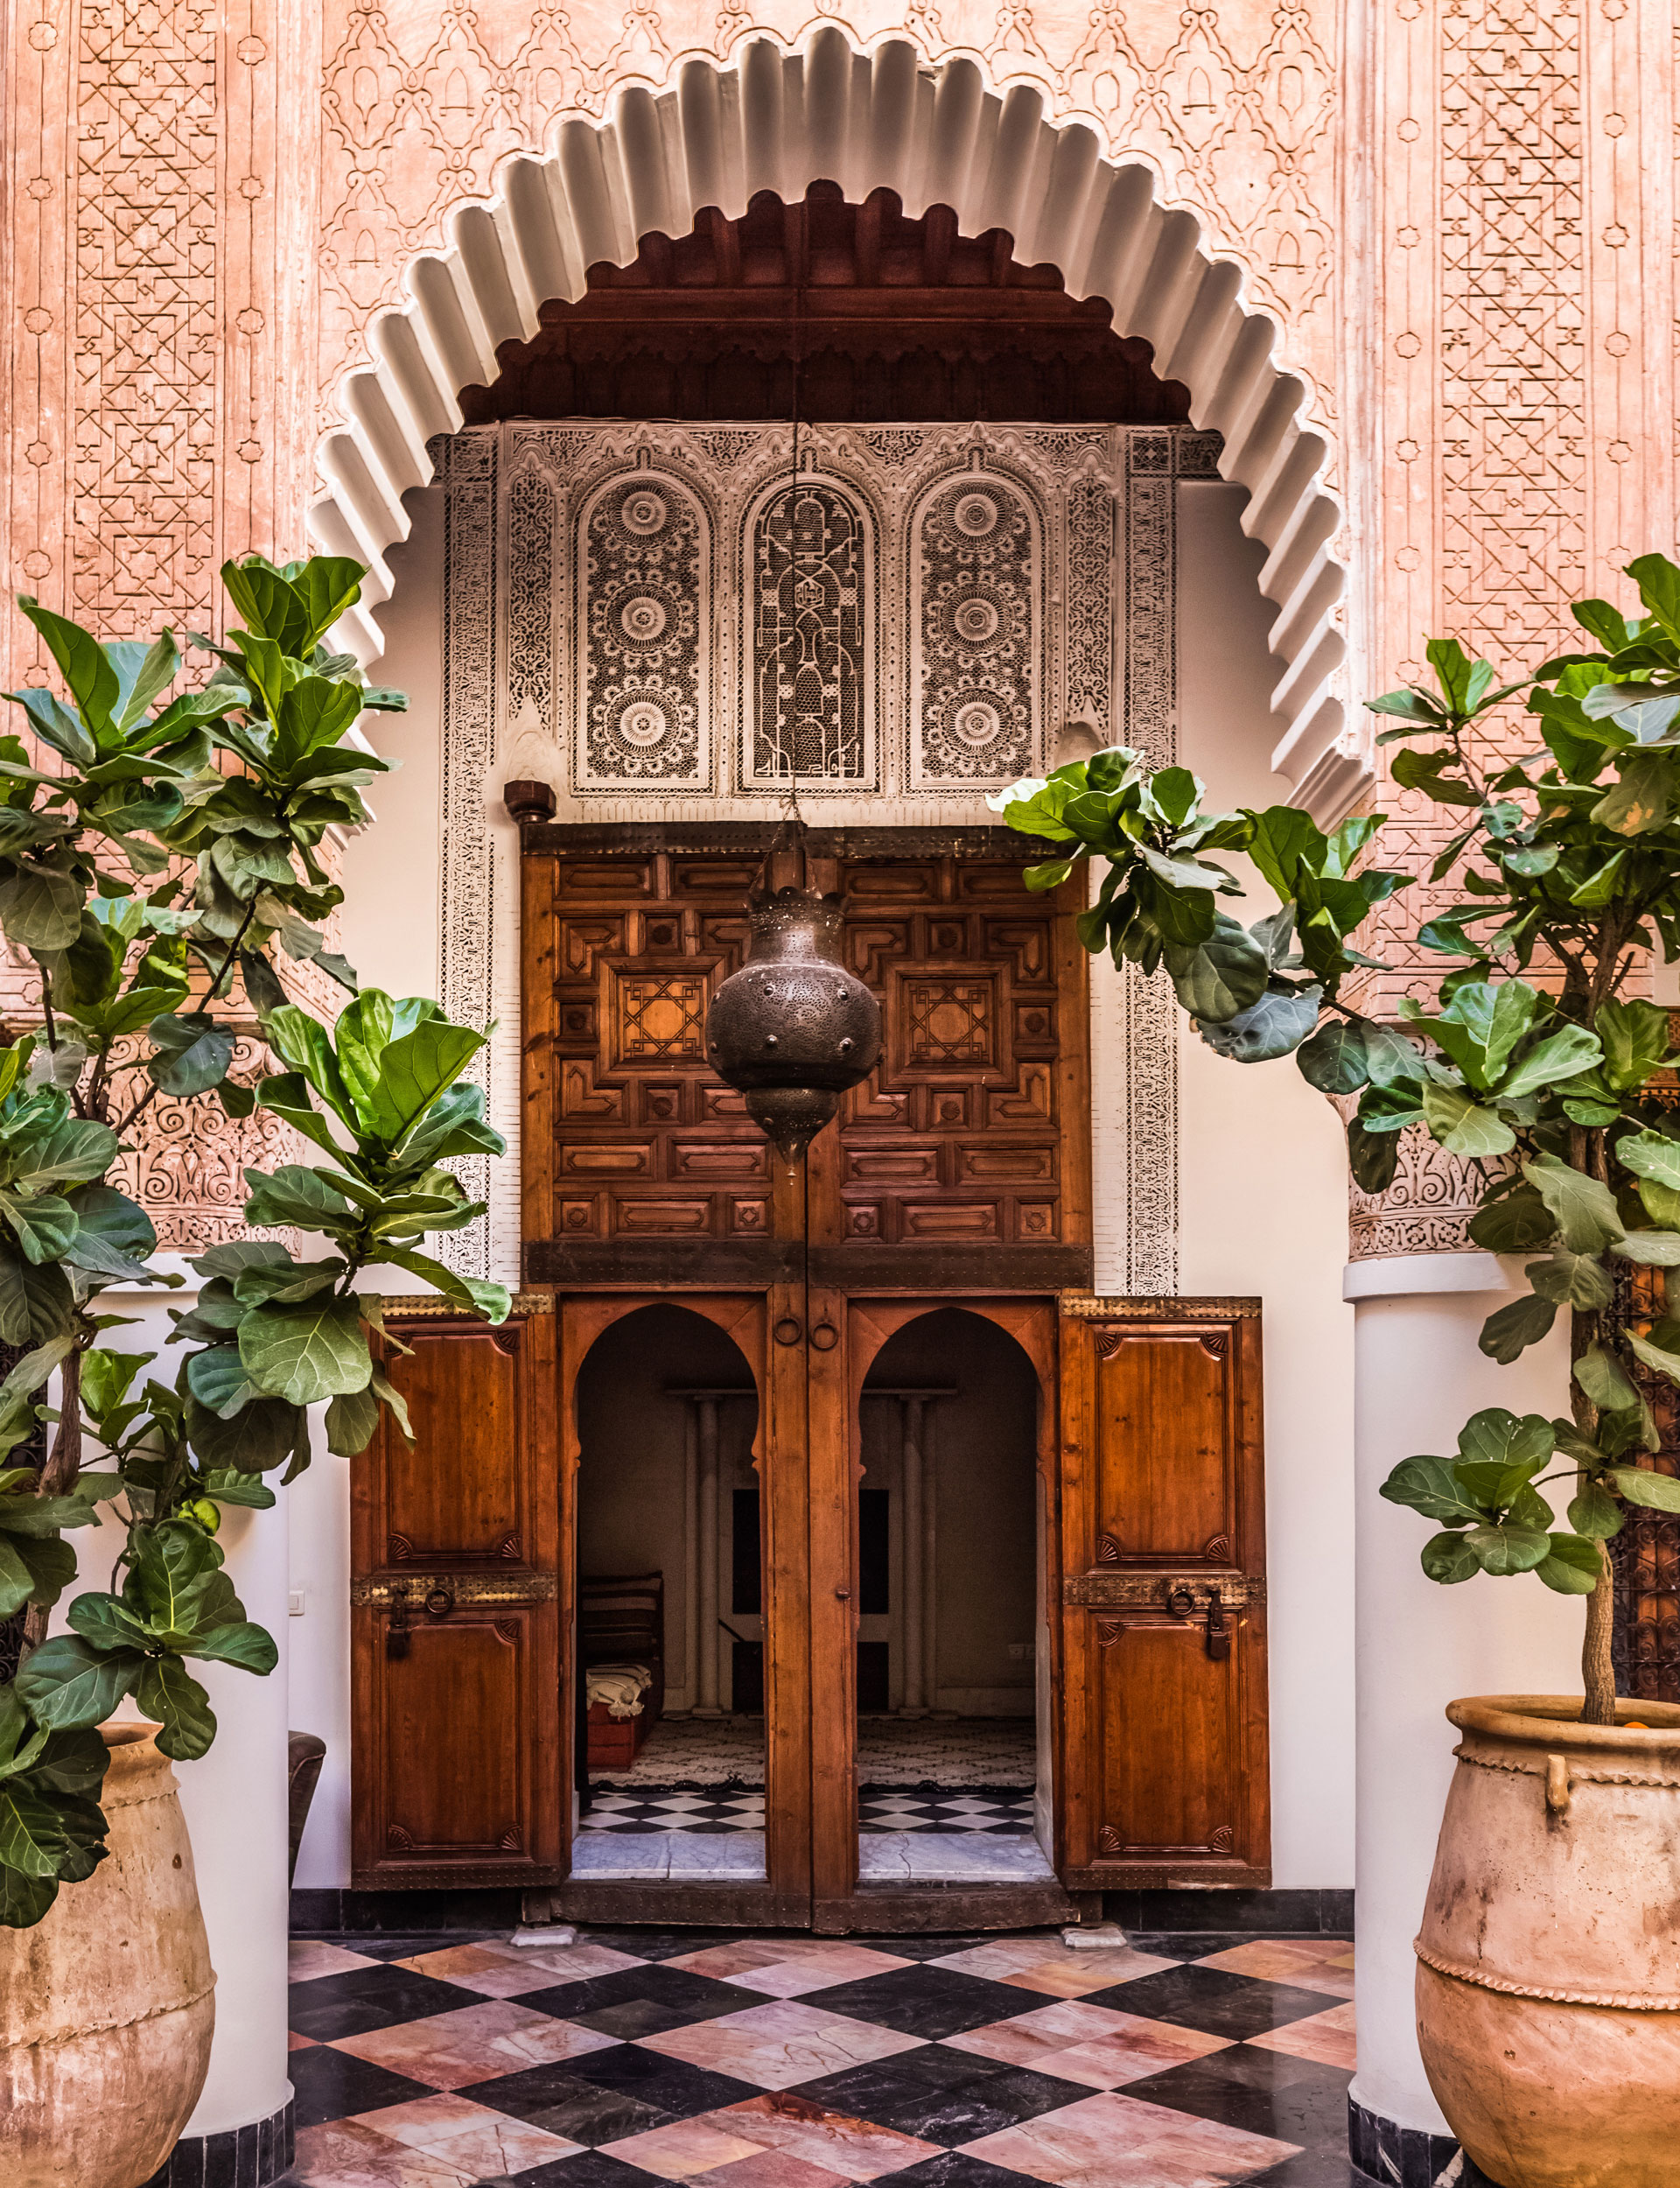 How we can learn from Moroccan style garden living on Moroccan Backyard Design  id=19696